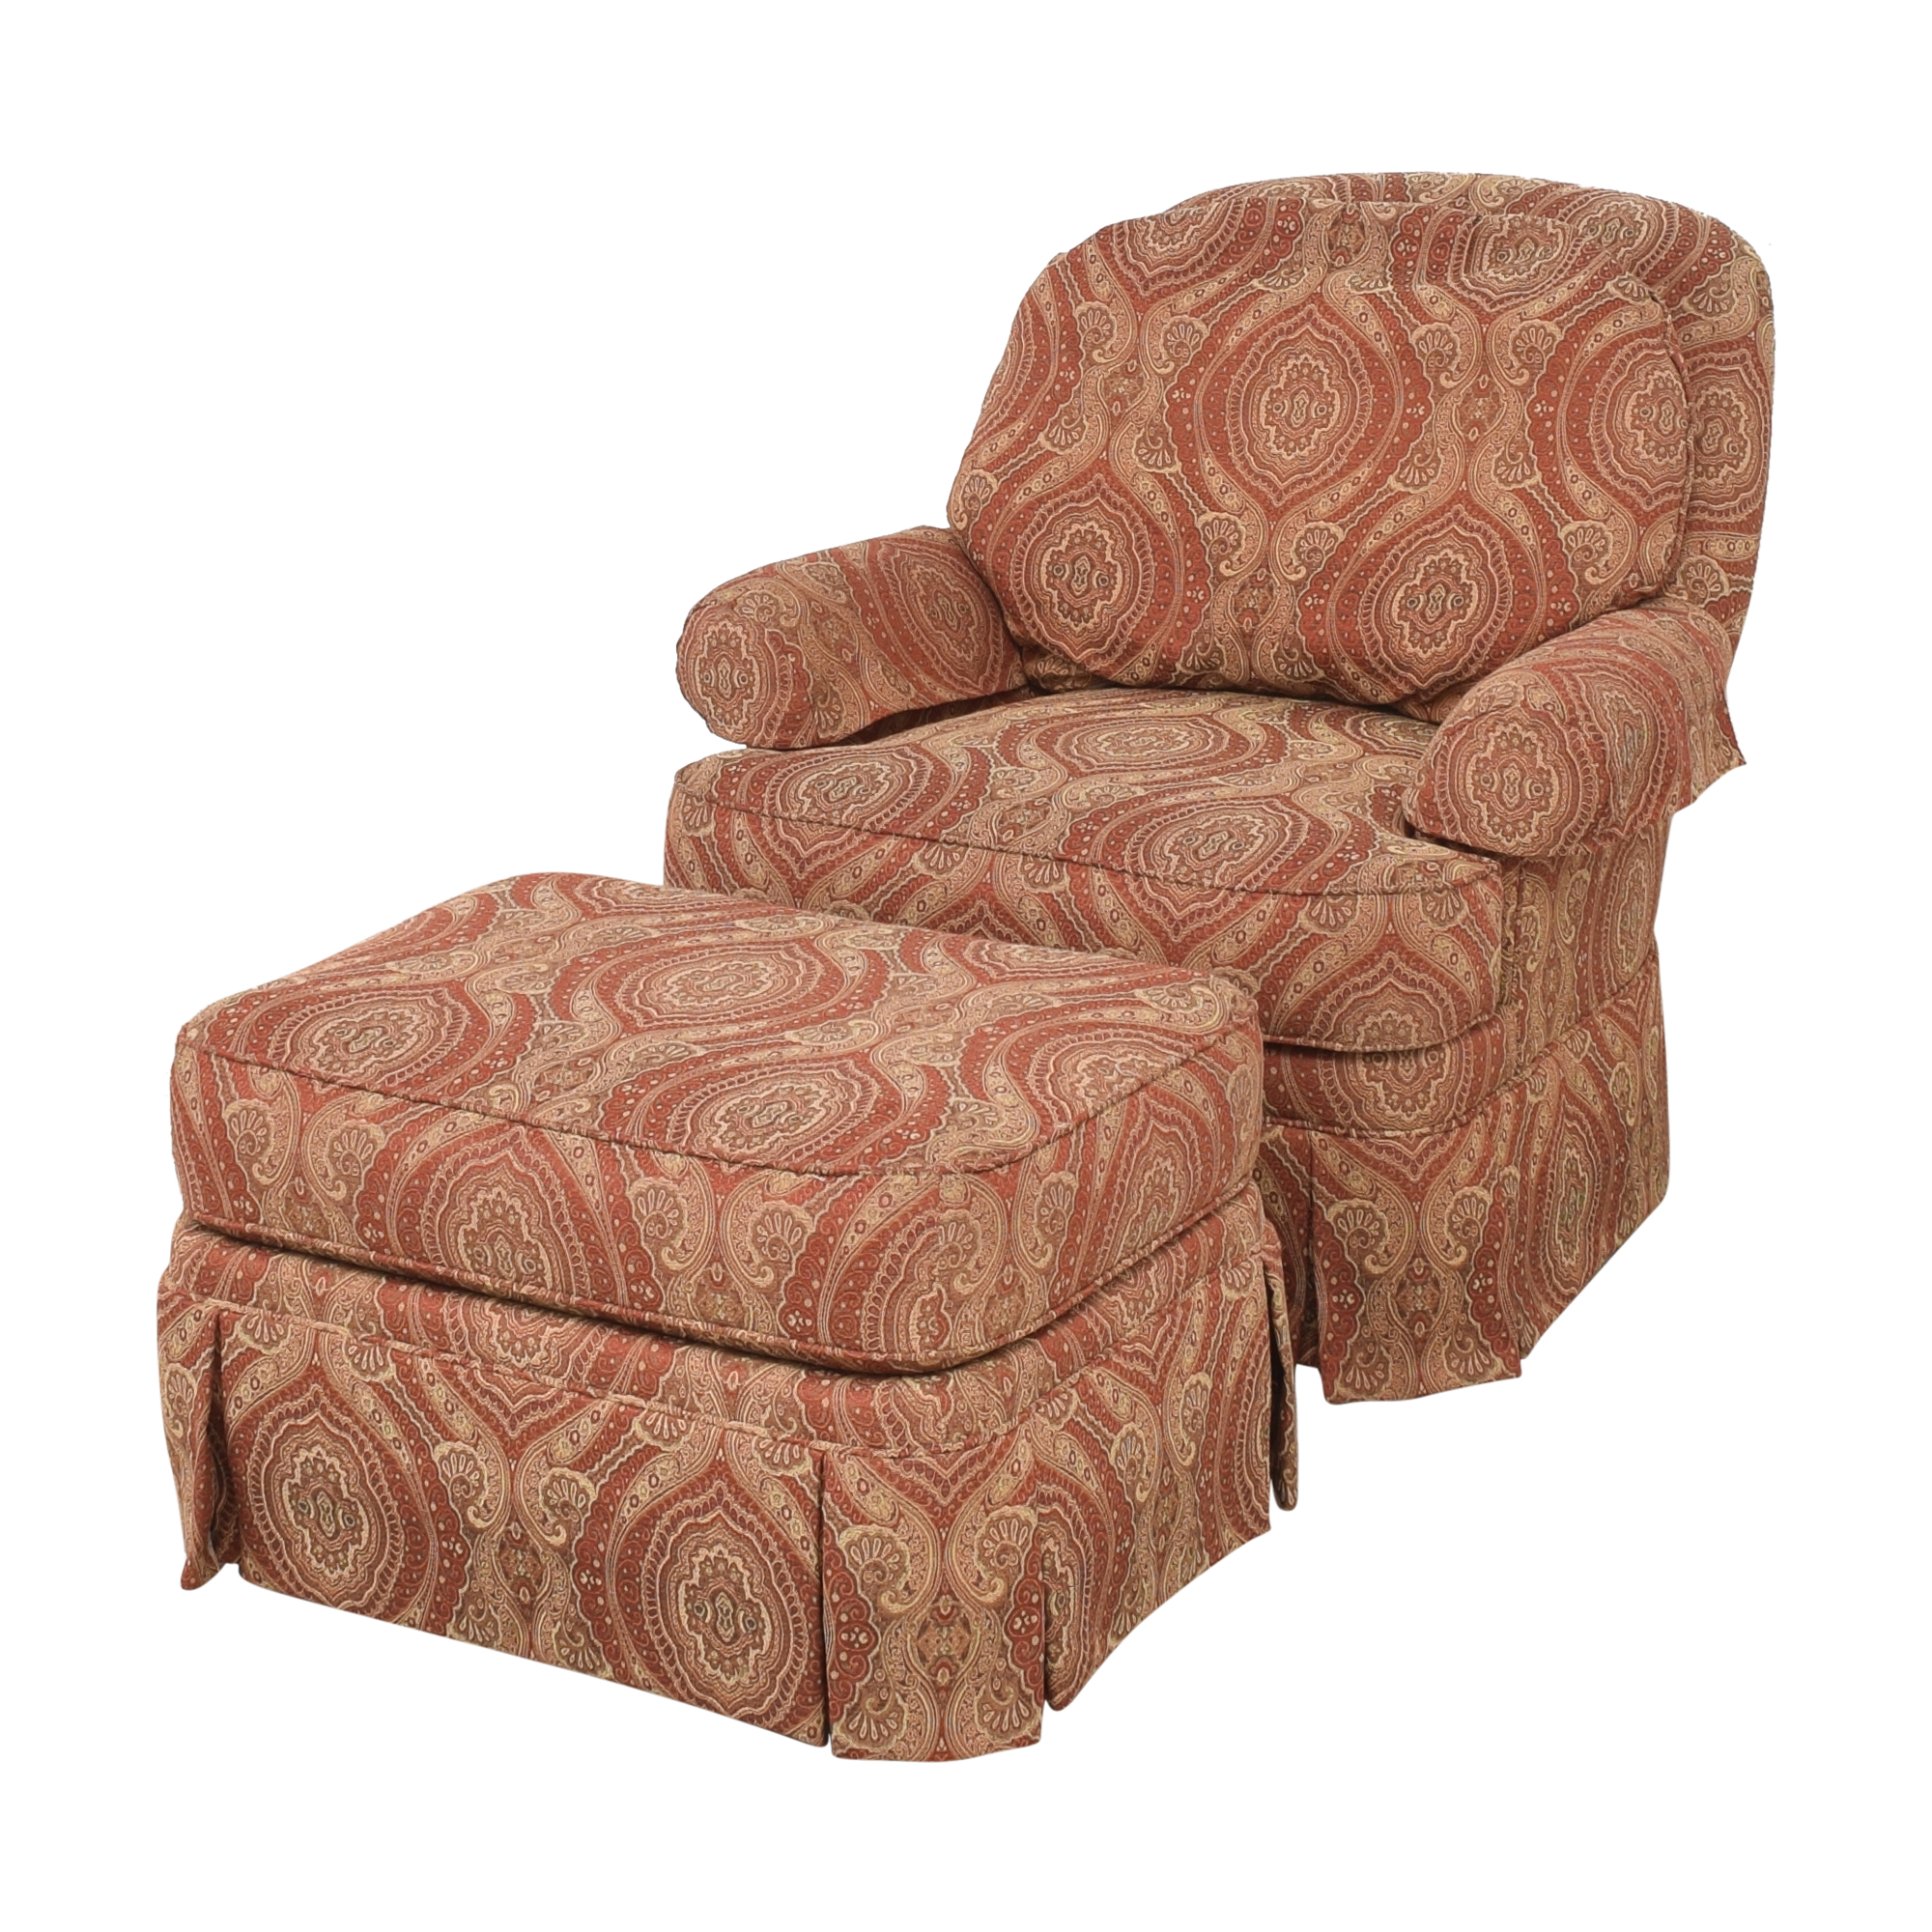 buy Ethan Allen Swivel Chair with Ottoman Ethan Allen Chairs